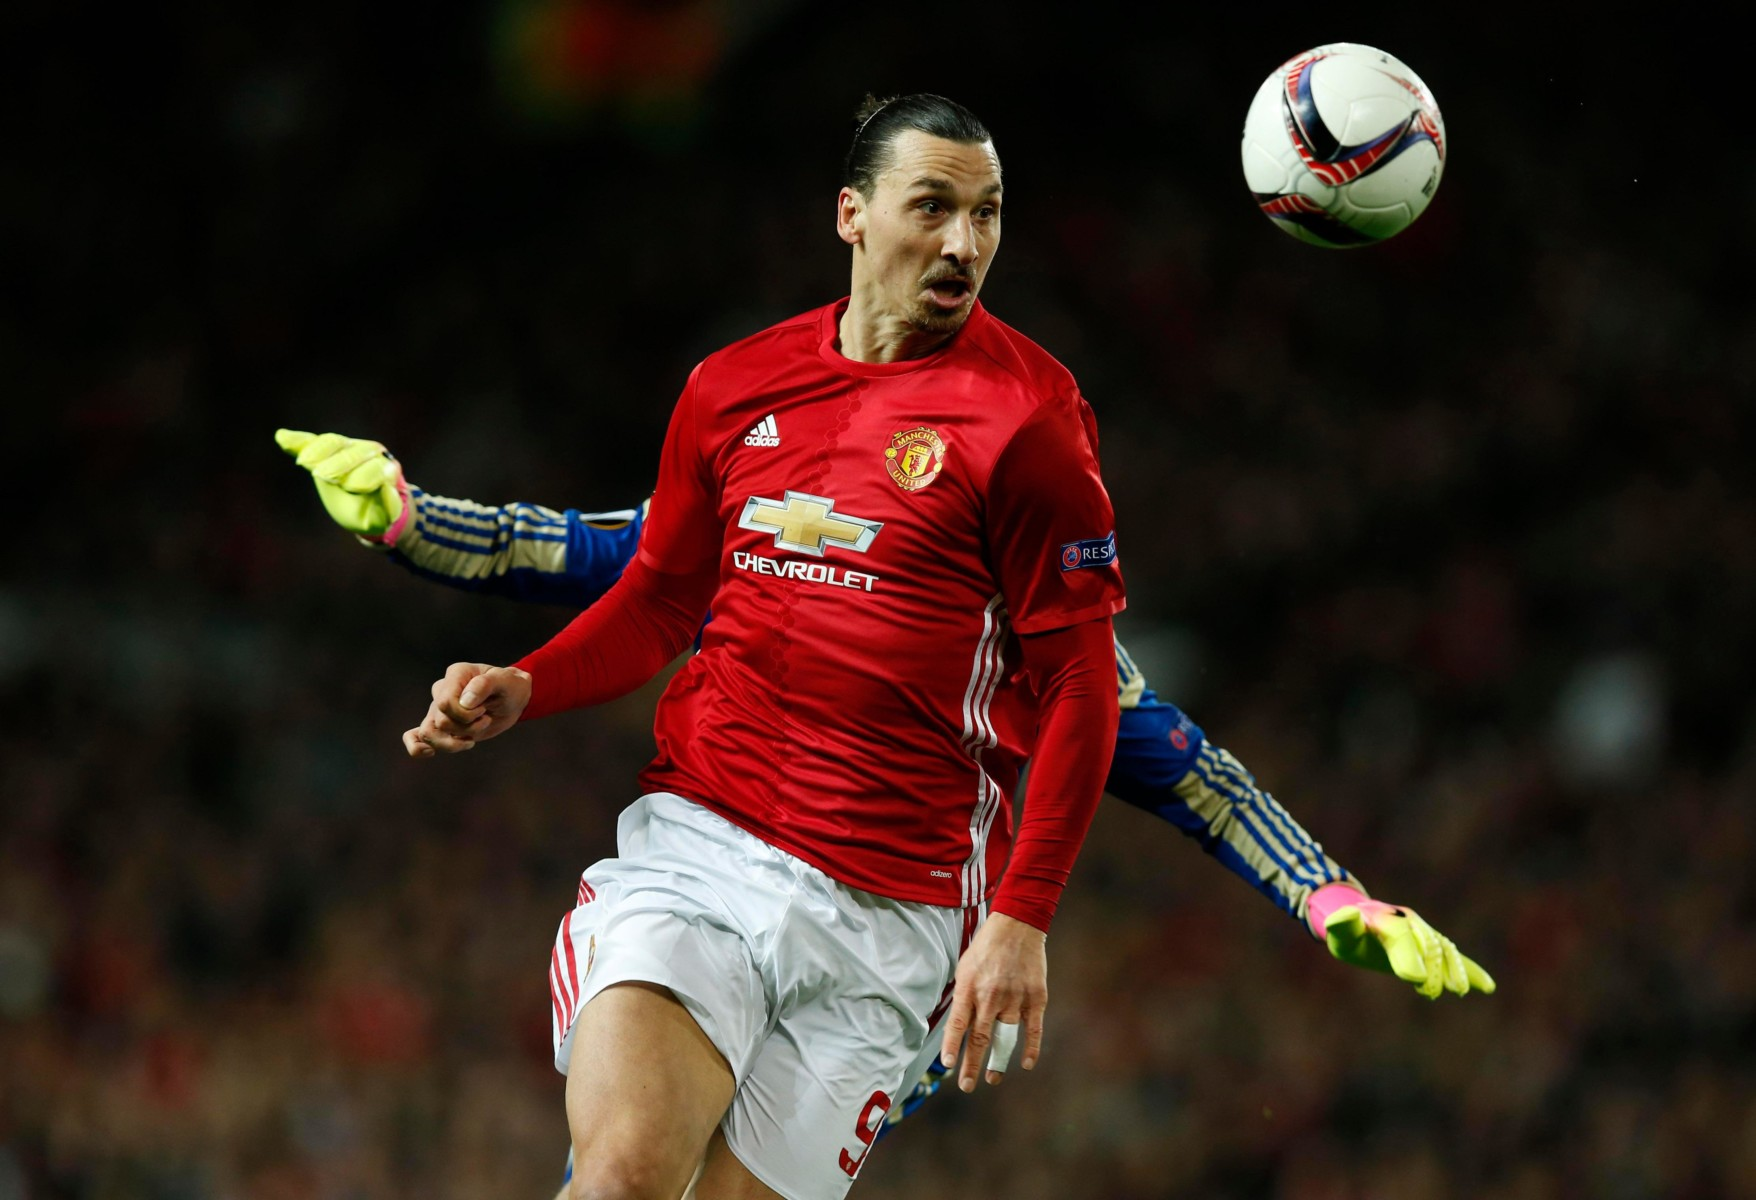 Manchester United ace Zlatan Ibrahimovic is also up front